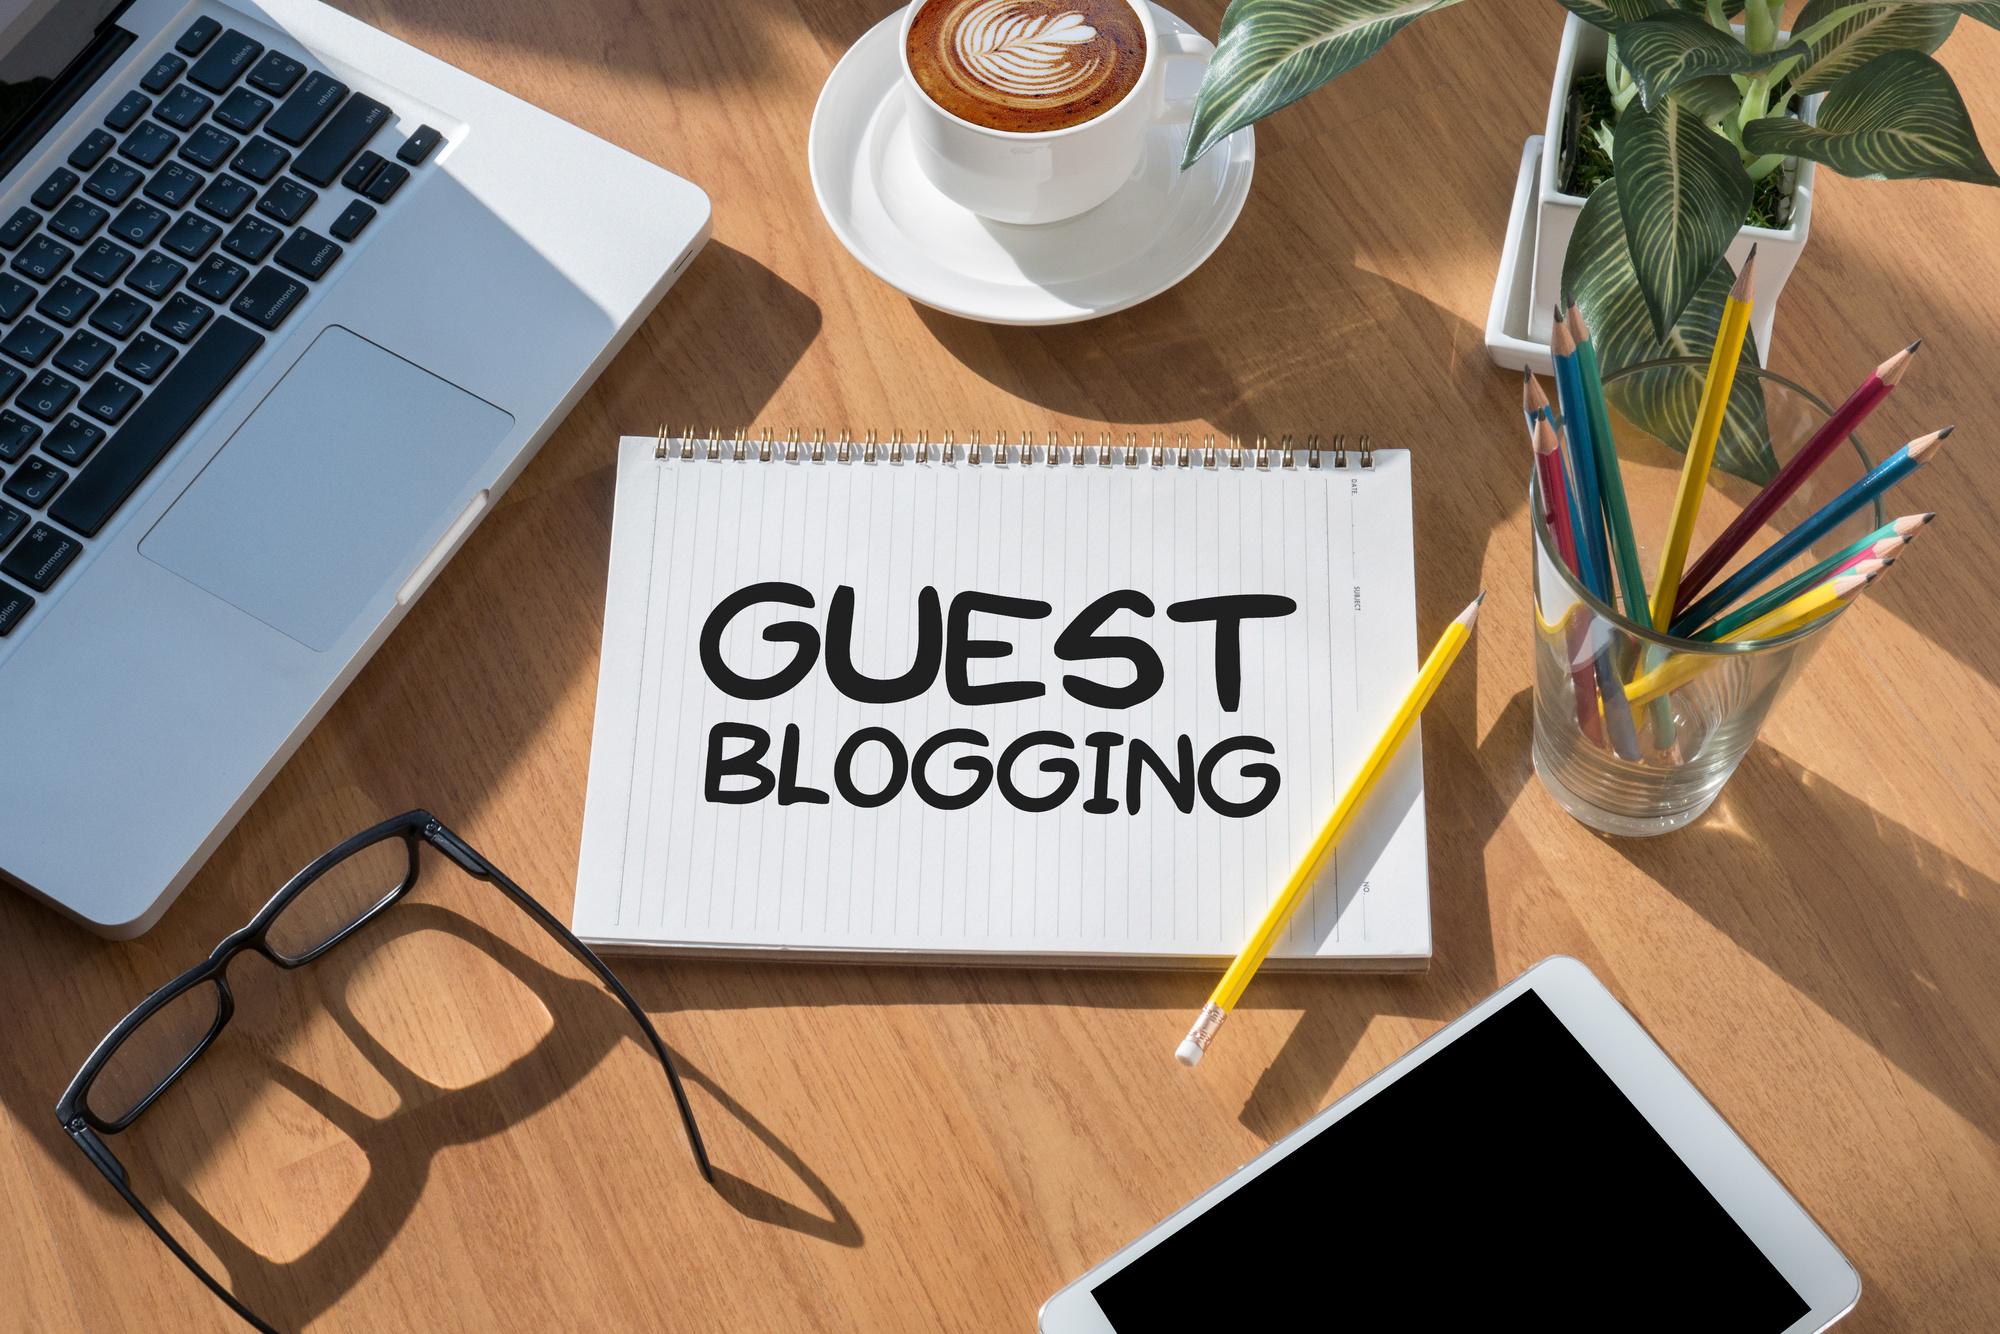 I will guest post in 8k news blog with dofollow